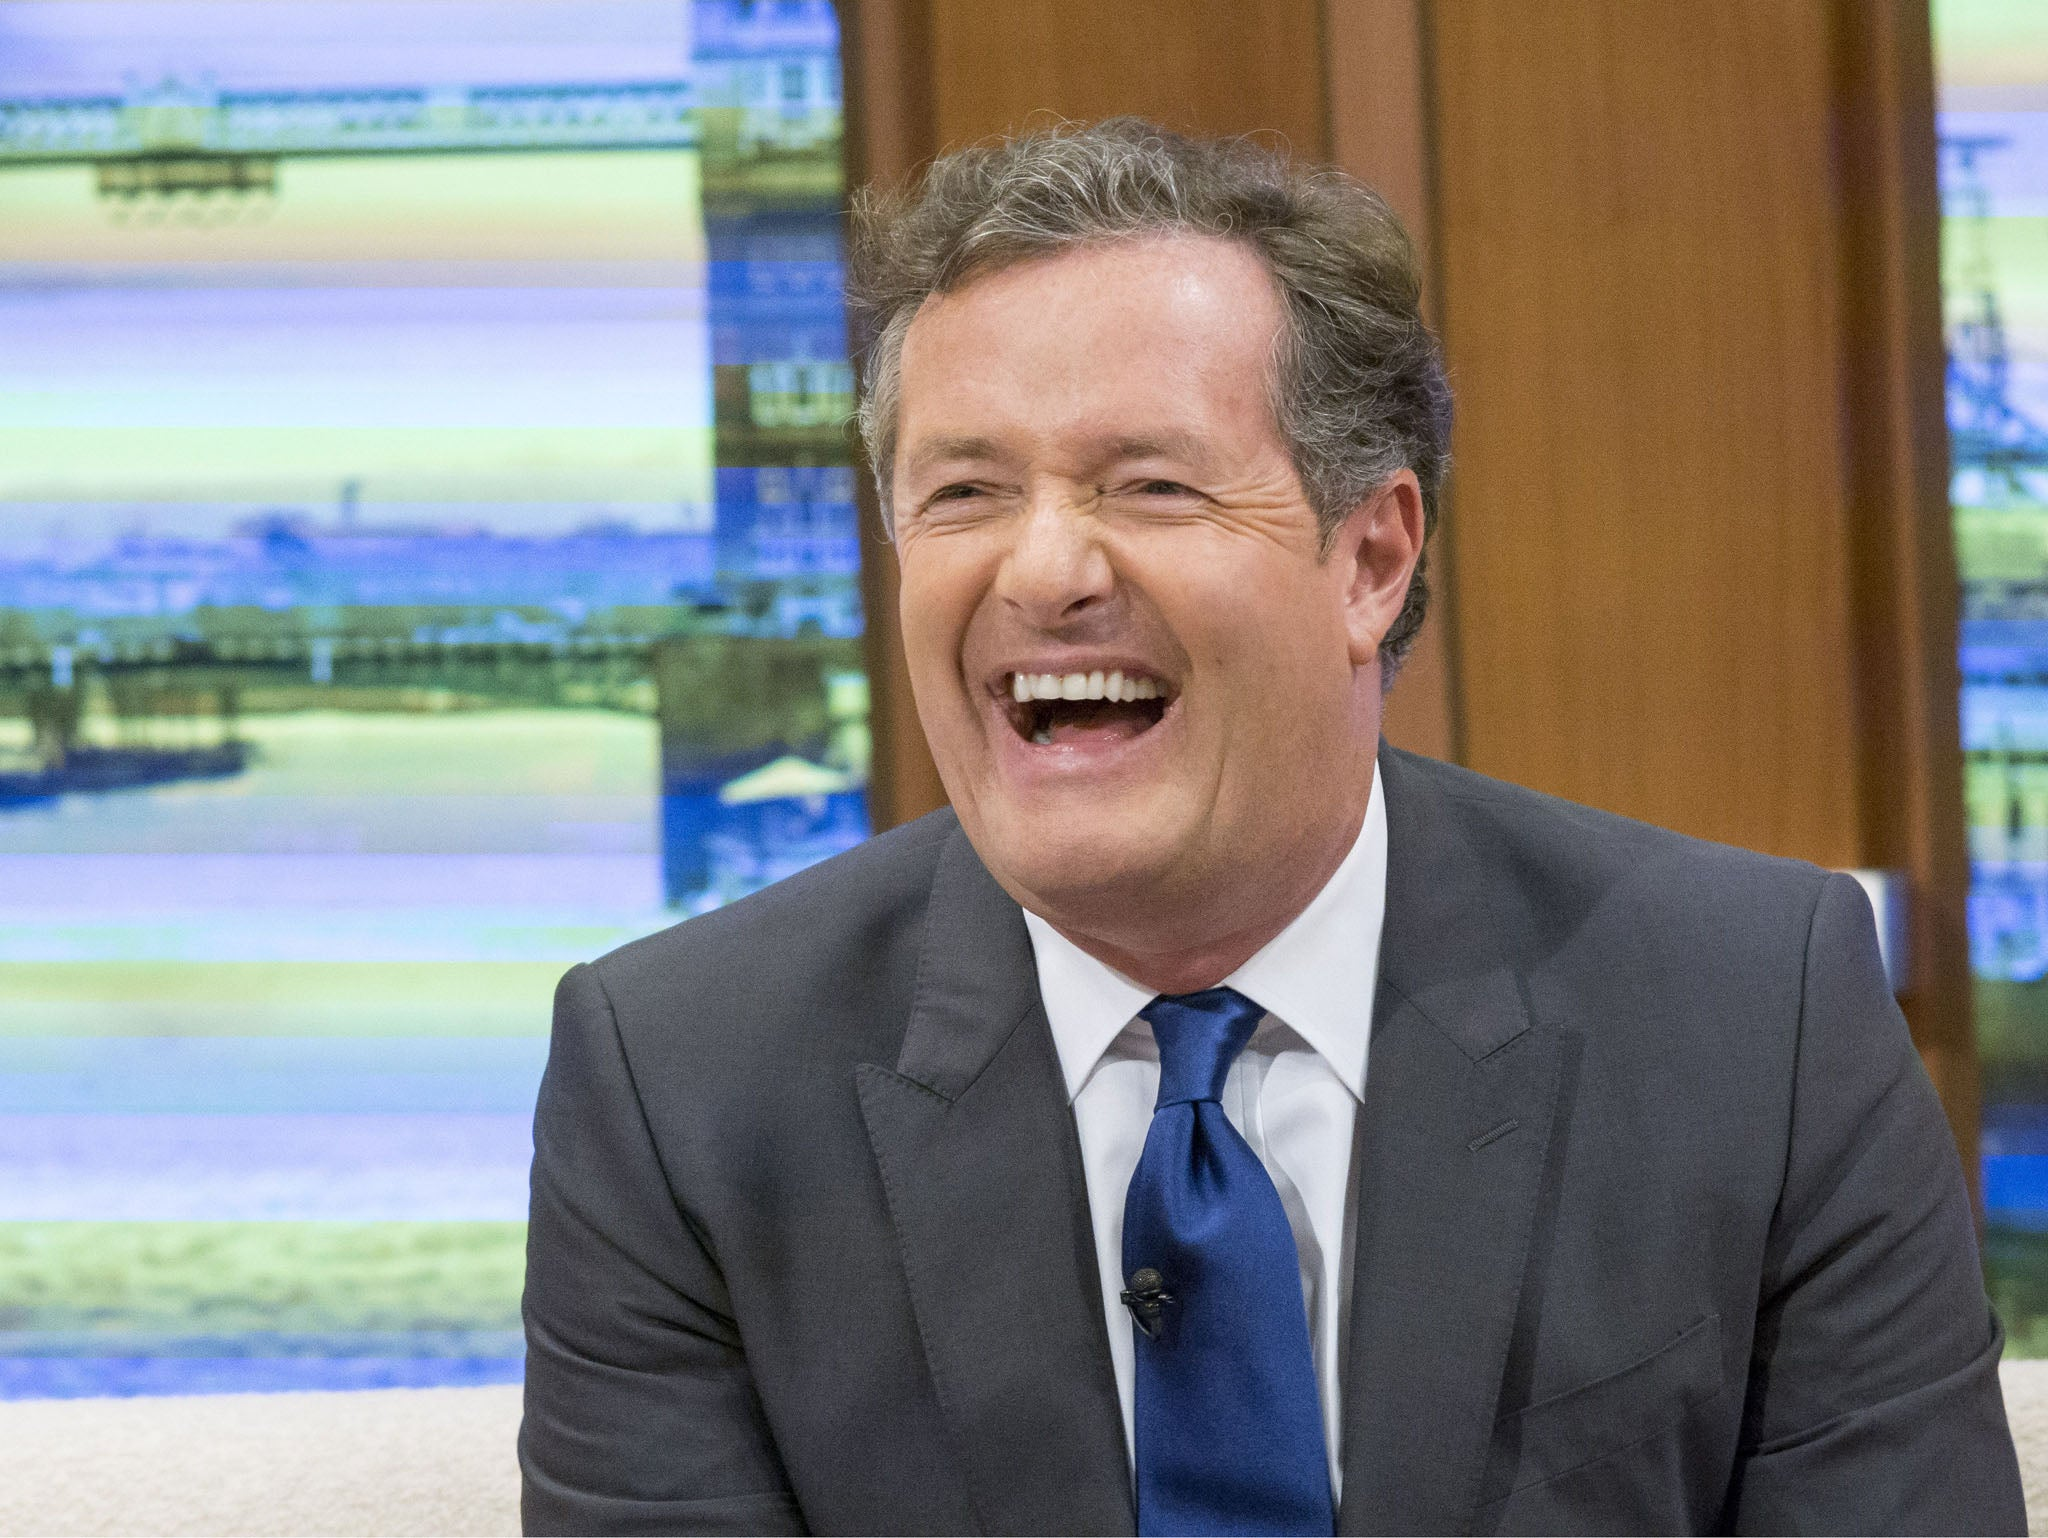 Watch Piers Morgan asked to explain phone hacking comments video